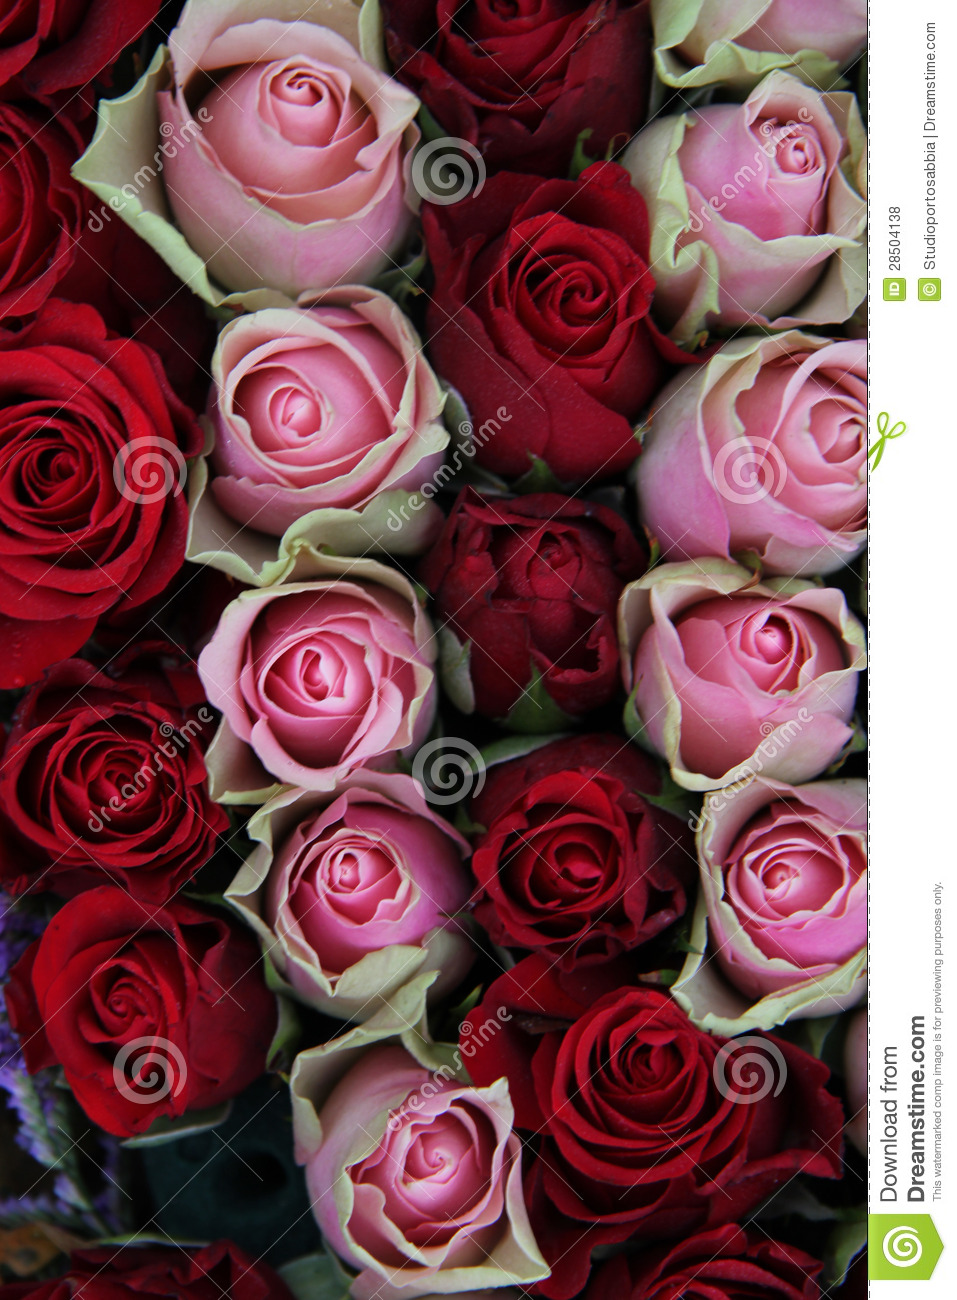 Red And Pink Bedroom: Wedding Centerpiece In Red And Pink Stock Photo